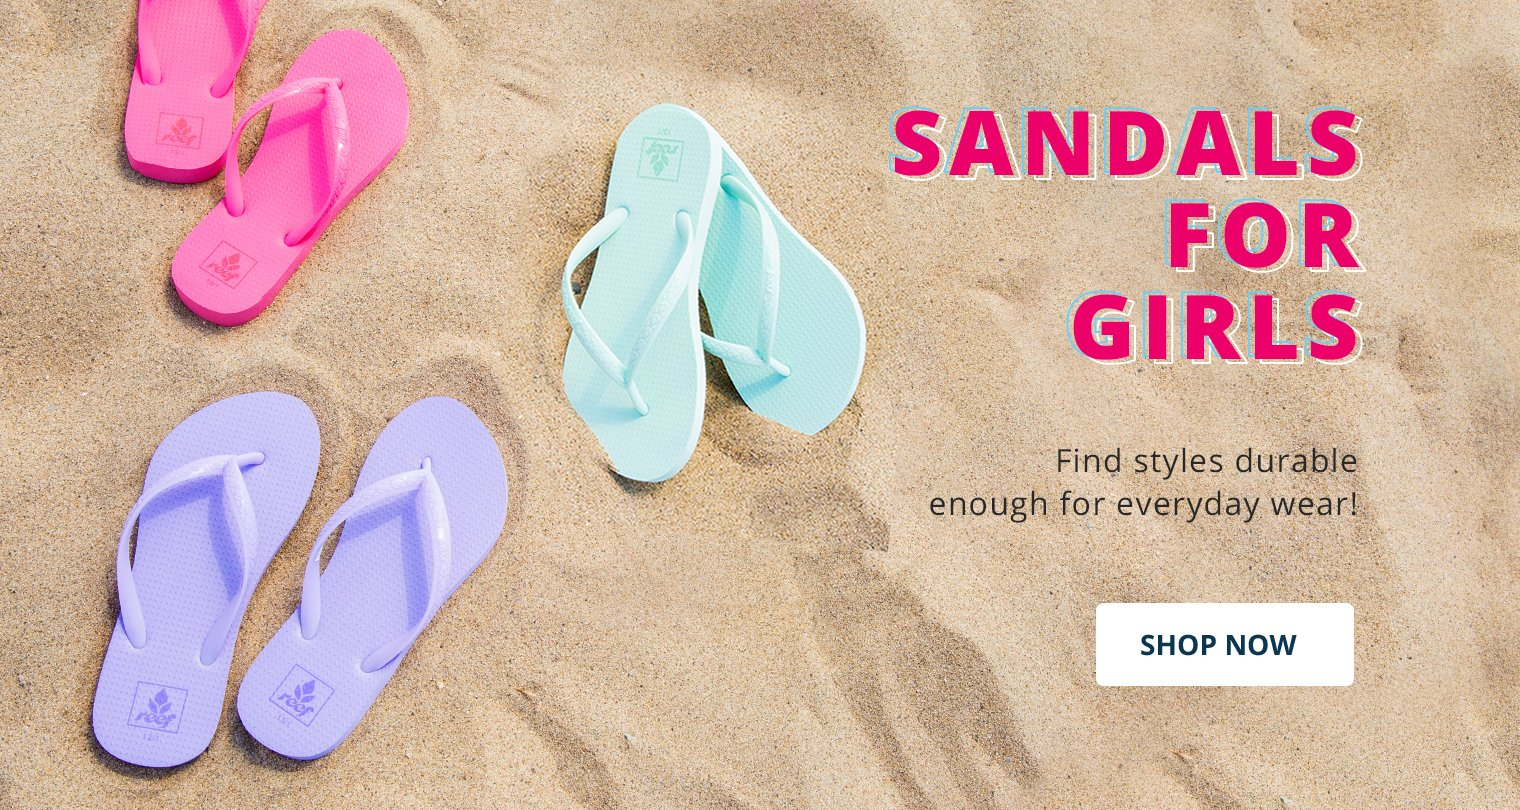 Image of girls sandals on the beach with sand in the background